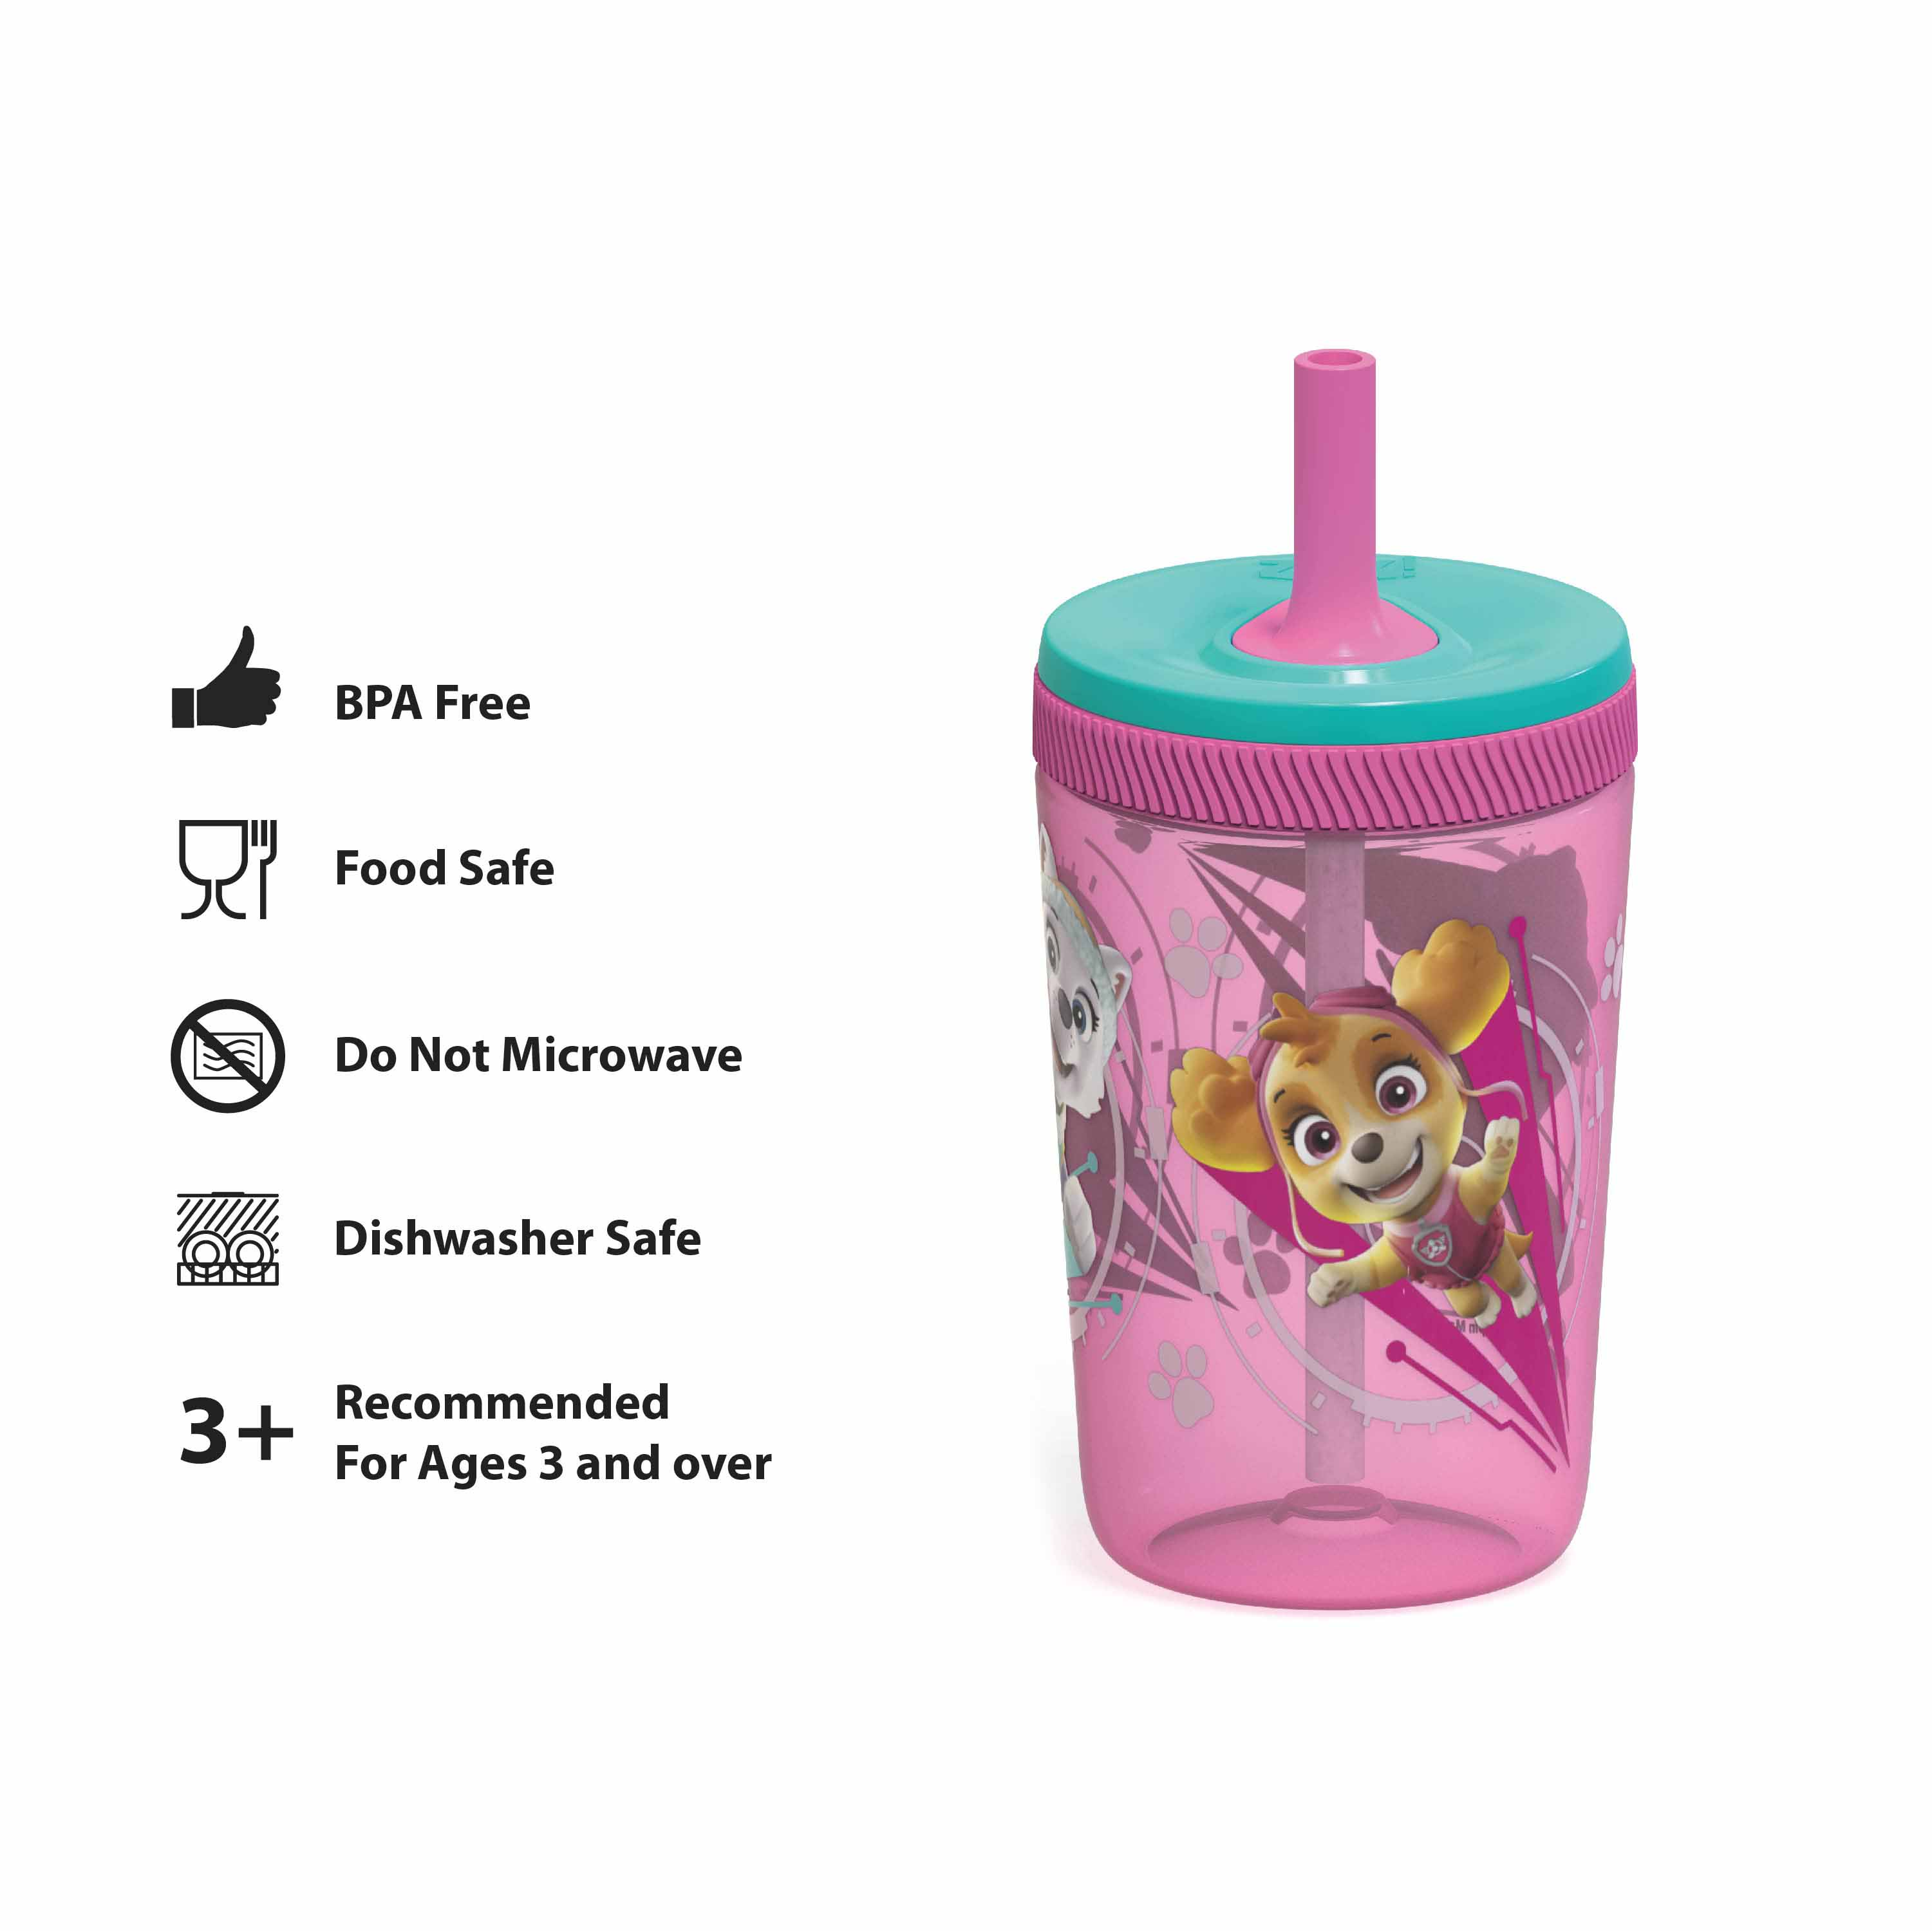 Paw Patrol 15  ounce Plastic Tumbler with Lid and Straw, Marshall and Skye, 2-piece set slideshow image 5